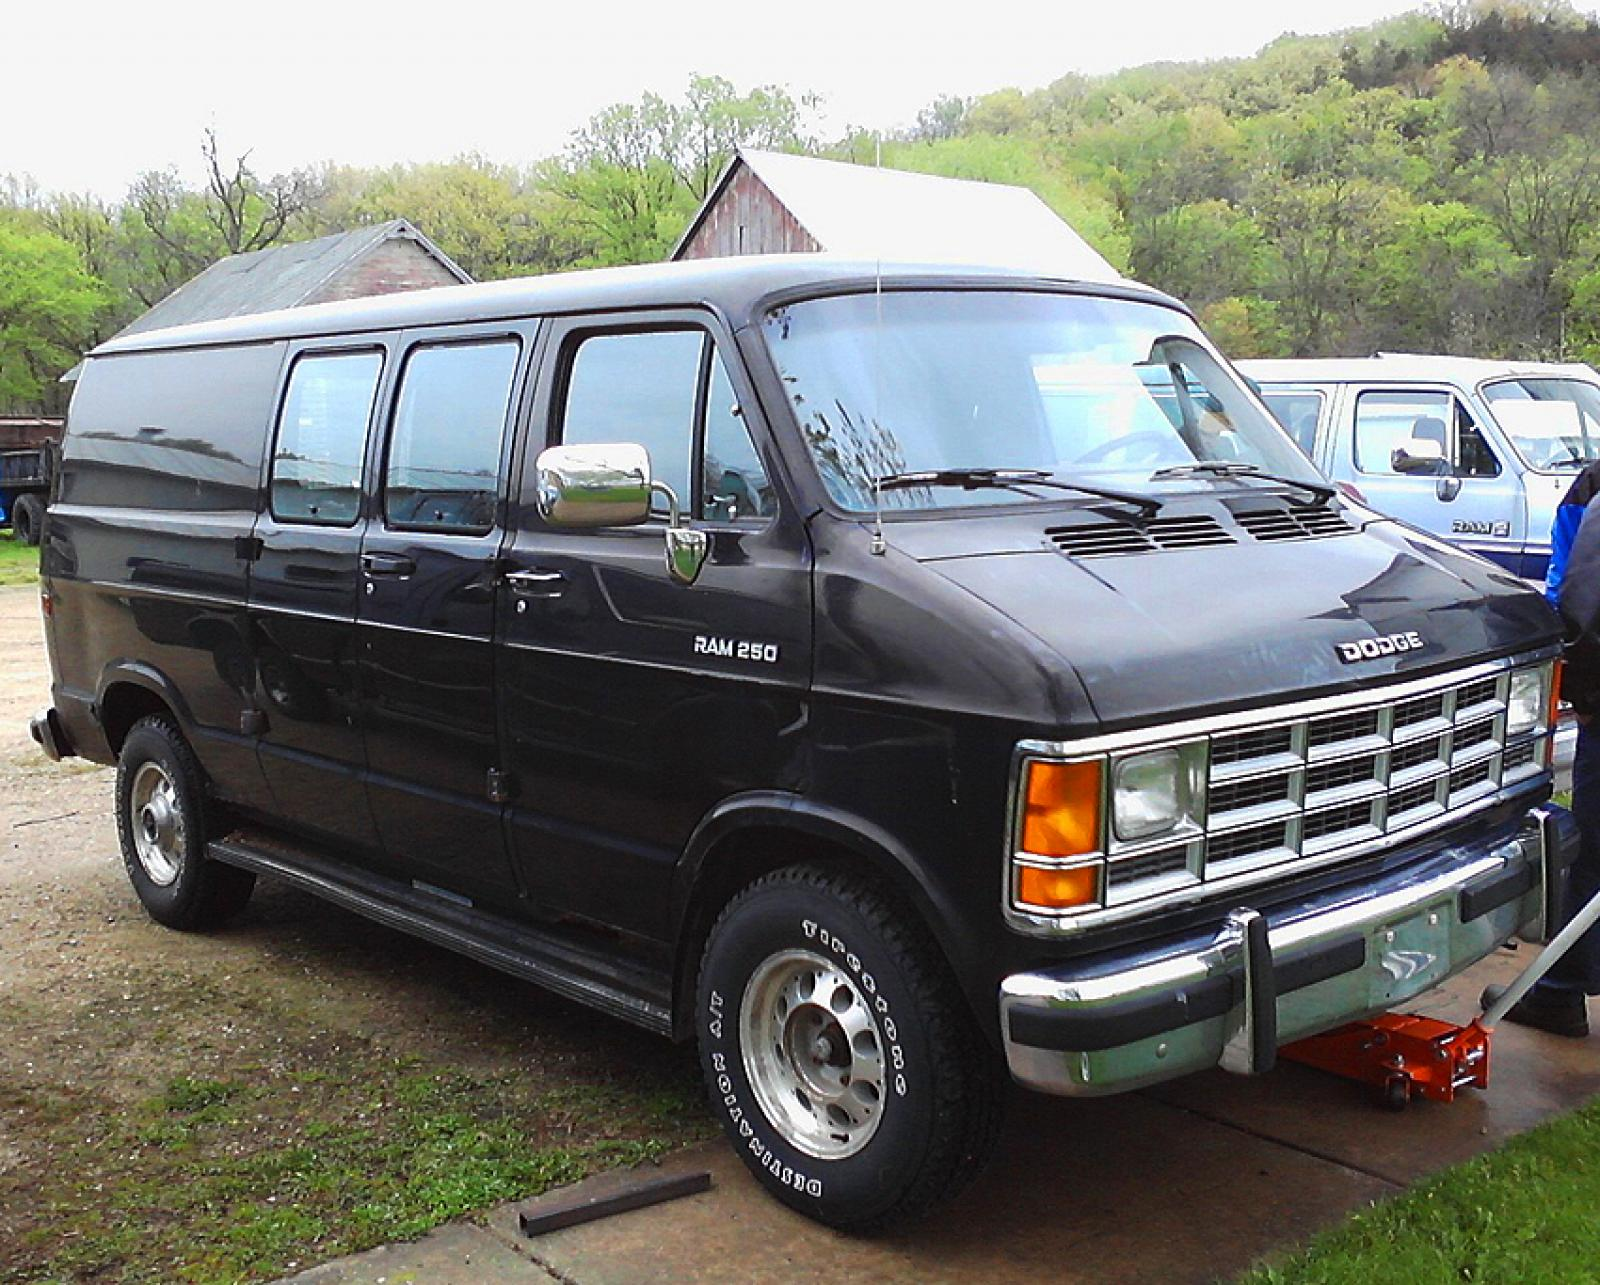 1992 Dodge Ram Van Information And Photos Zombiedrive 2014 3 800 1024 1280 1600 Origin